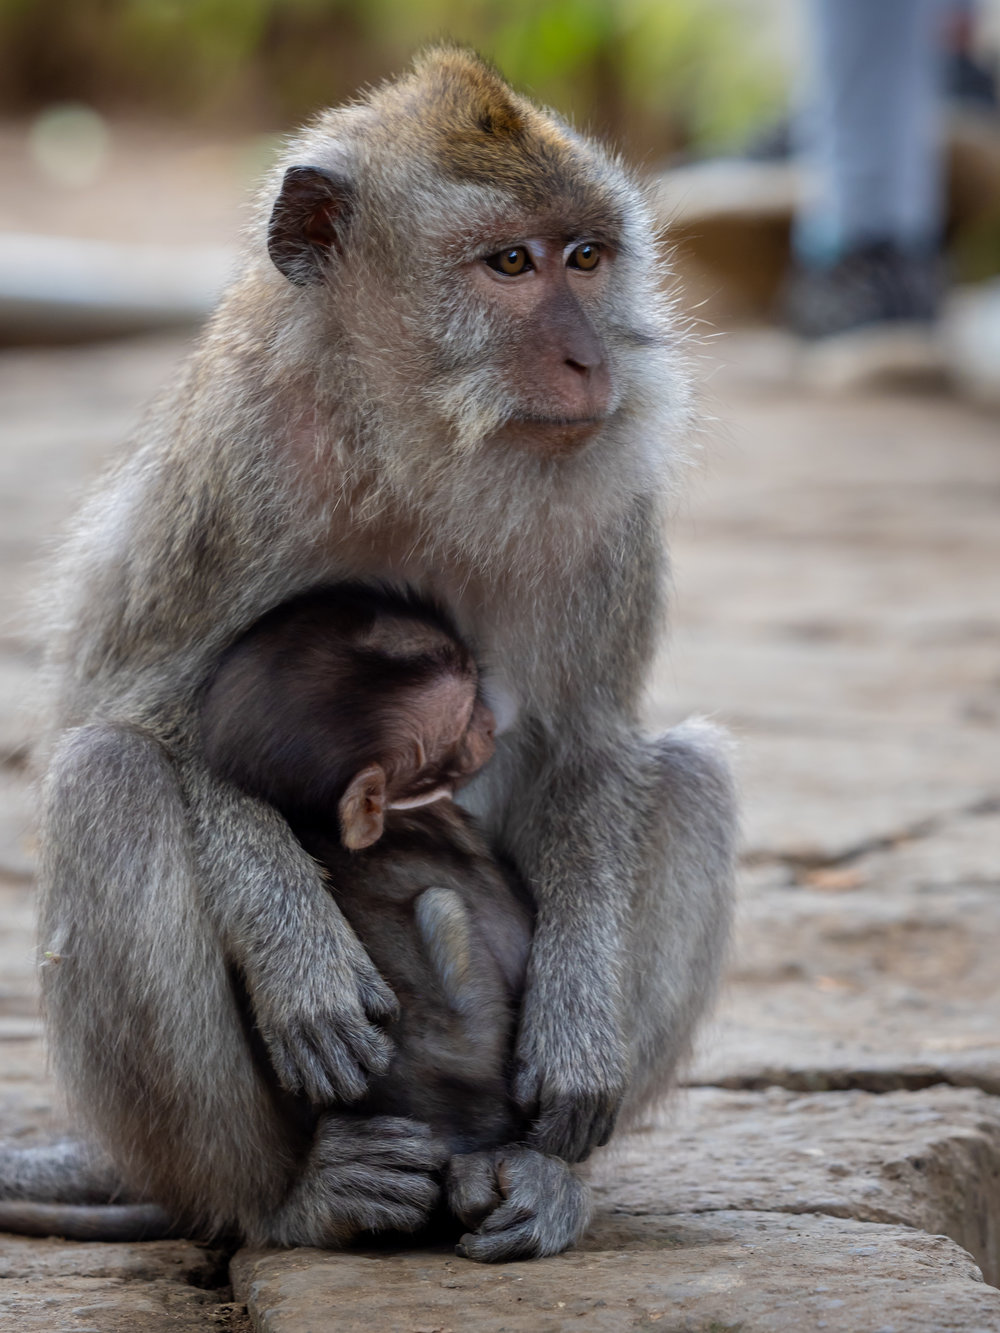 Musings by the Glass - Balinese Road Less Traveled - Monkey